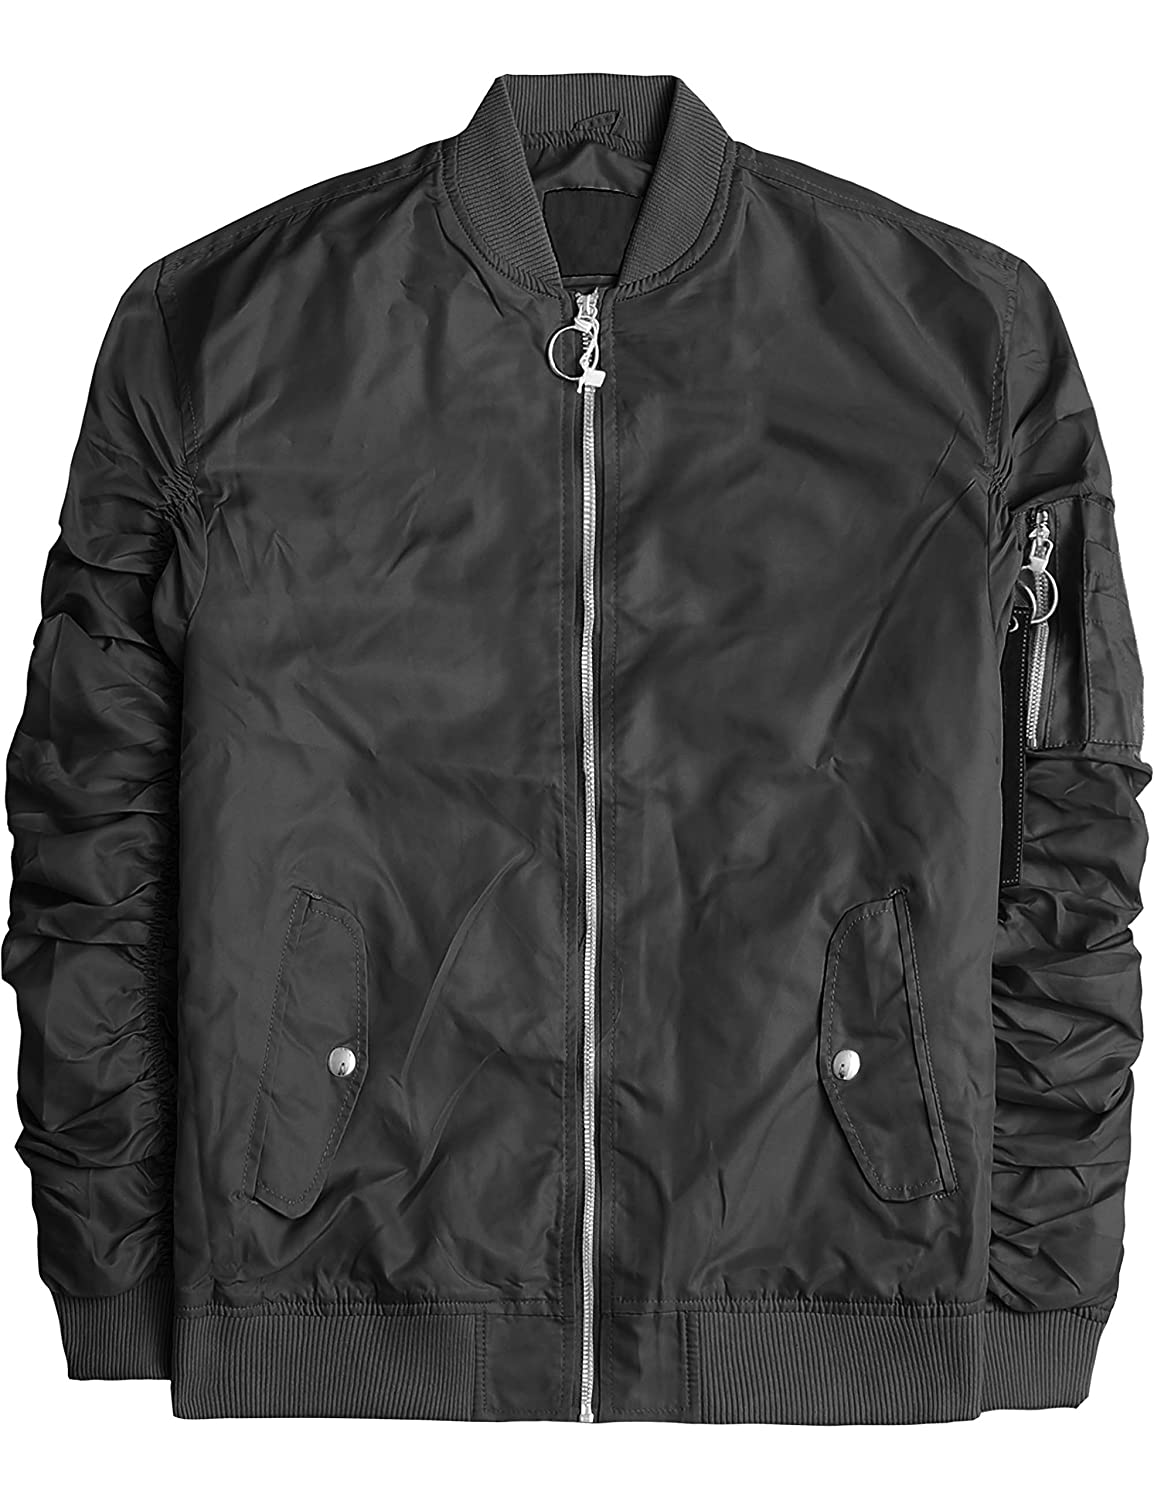 6688e485634 ... Mens Ruched Bomber Jacket Waterproof Lightweight Sleeve Zip up  Windbreaker. Wholesale Price 24.96 -  34.96. Gathered ruched sleeves design.